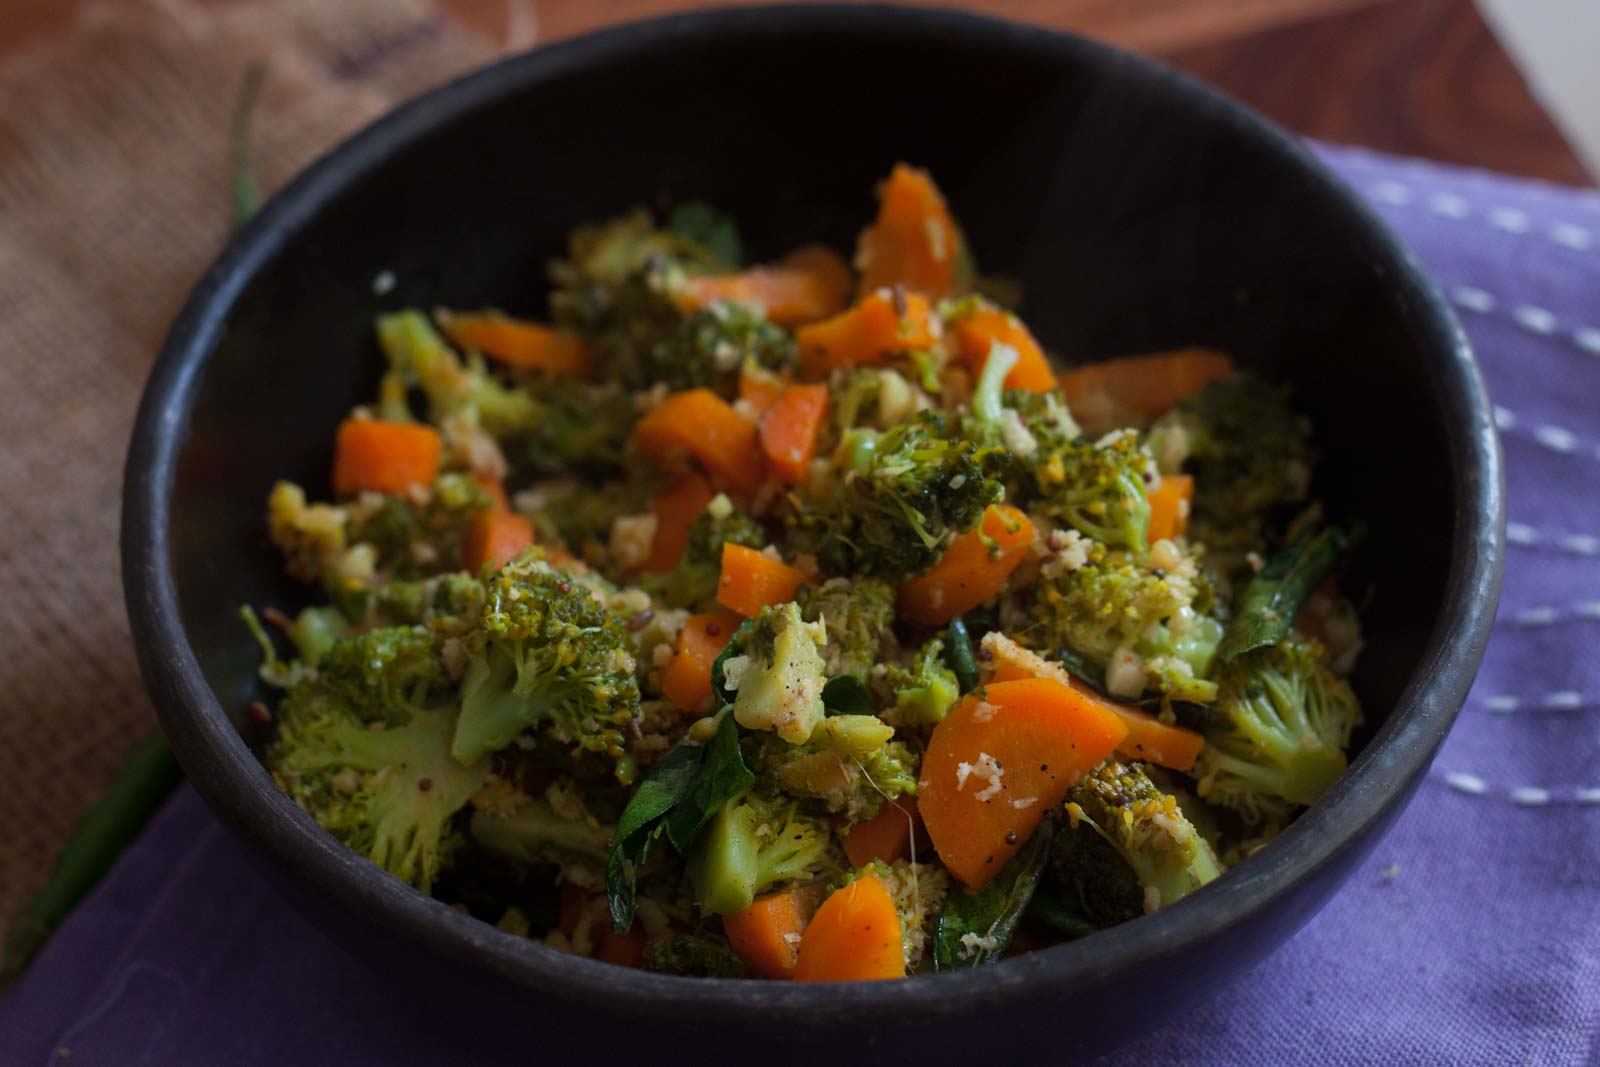 Carrot and broccoli Poriyal Recipe 7237